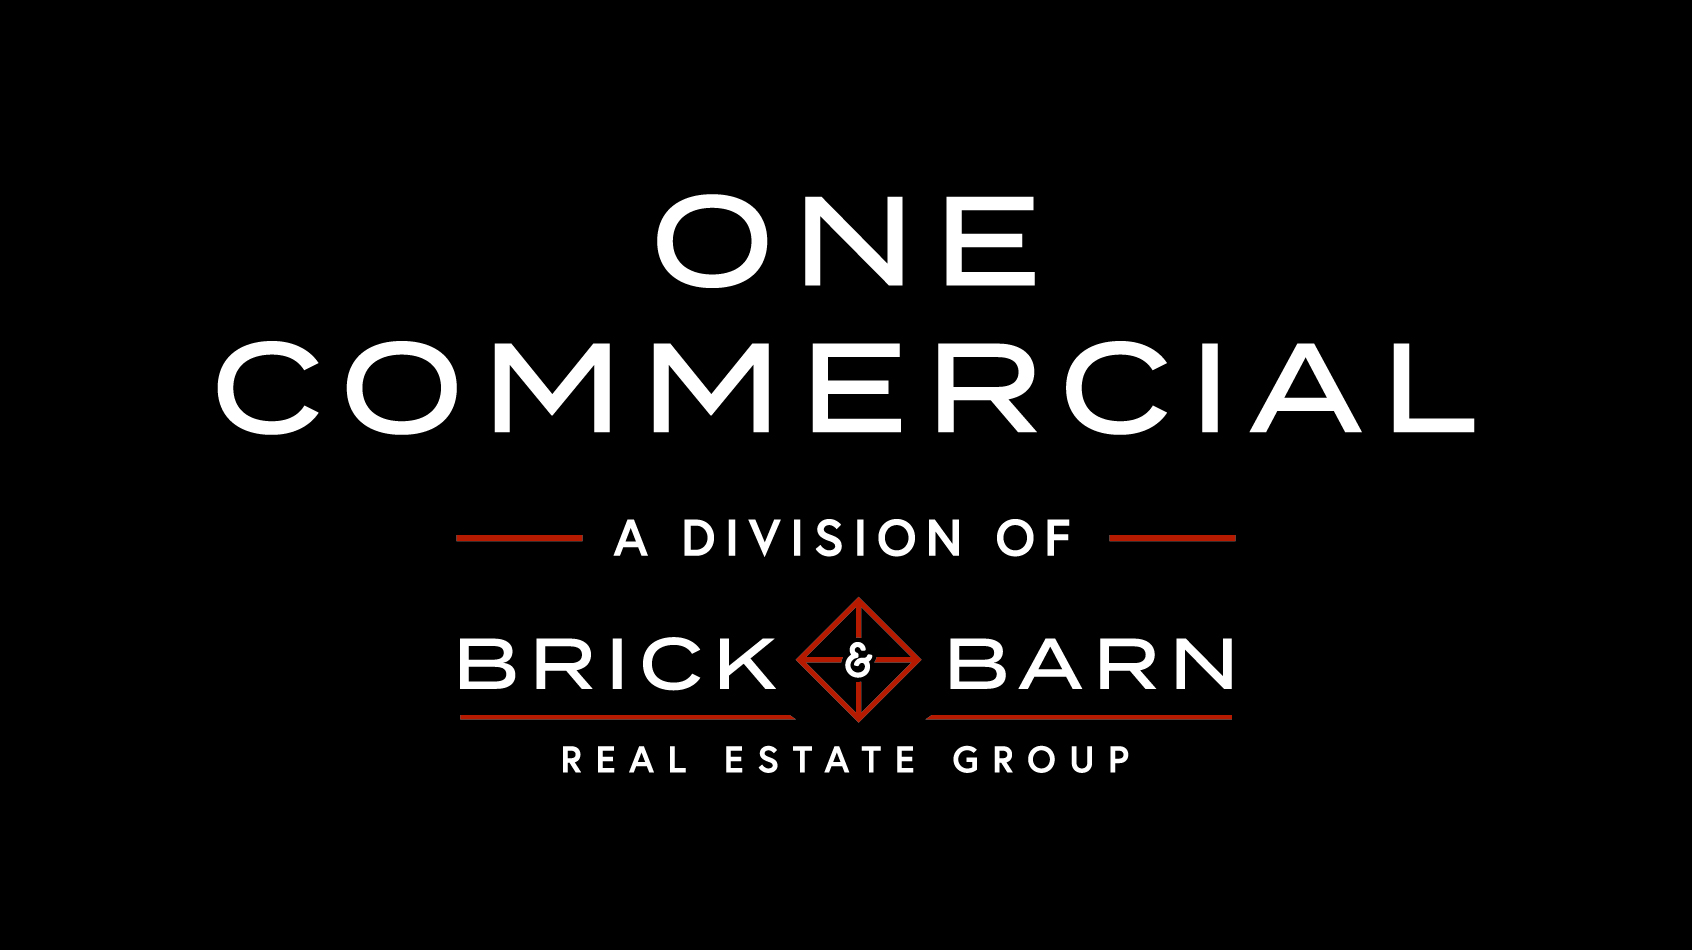 One Commercial Real Estate: Division of Brick & Barn Real Estate Group